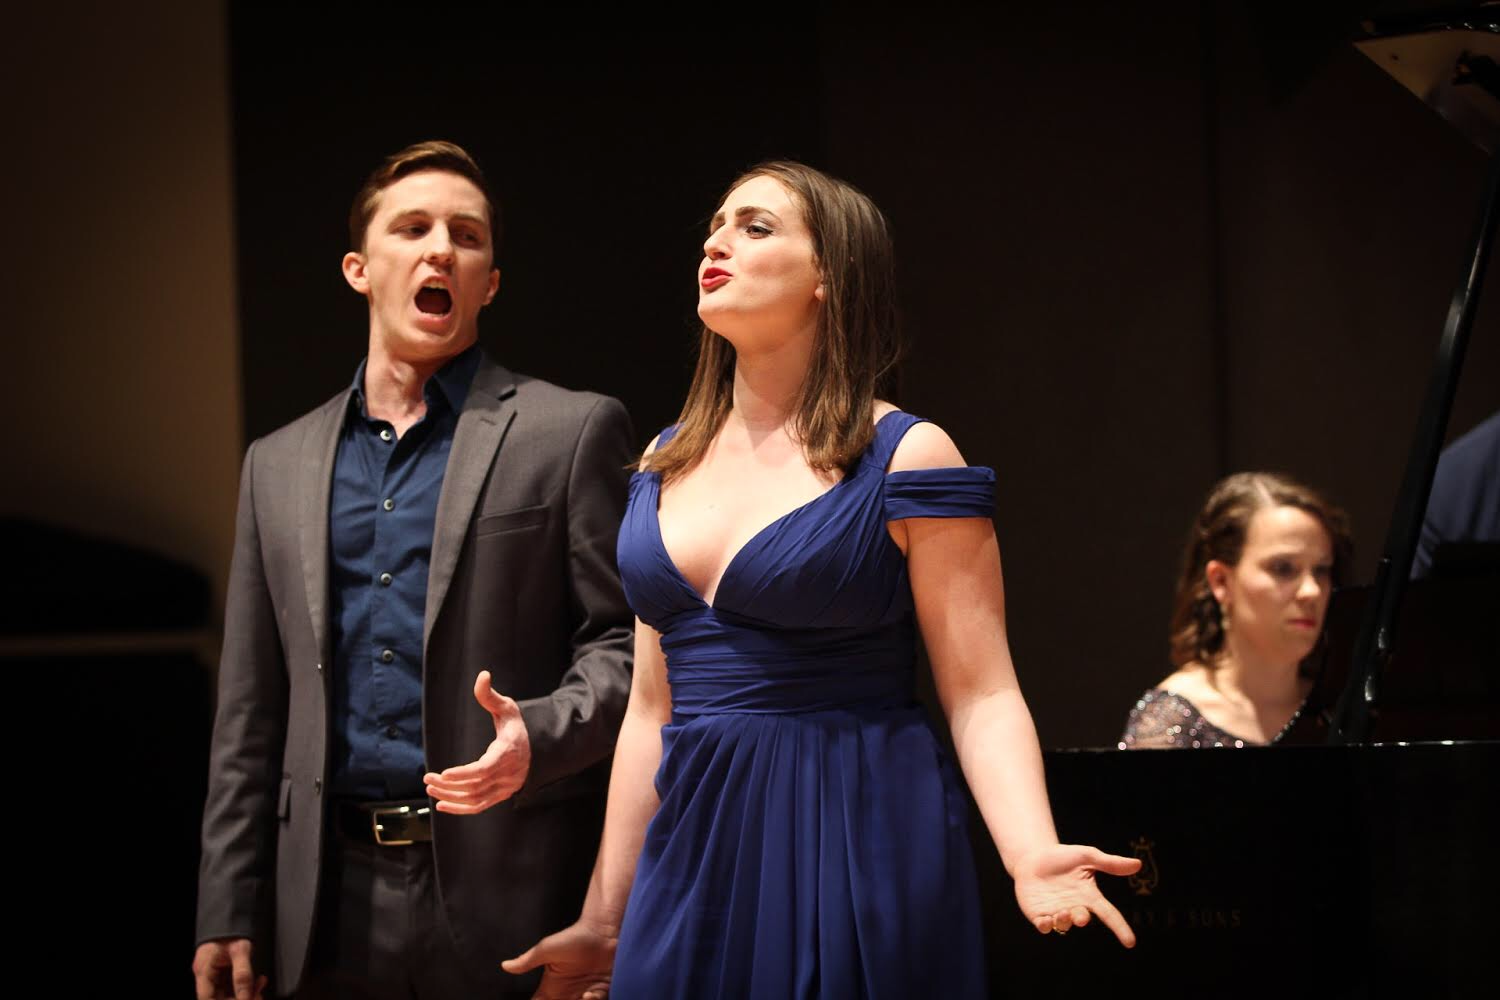 Ann and Dylan Elza performing in Rigoletto Quartet, March 2018.